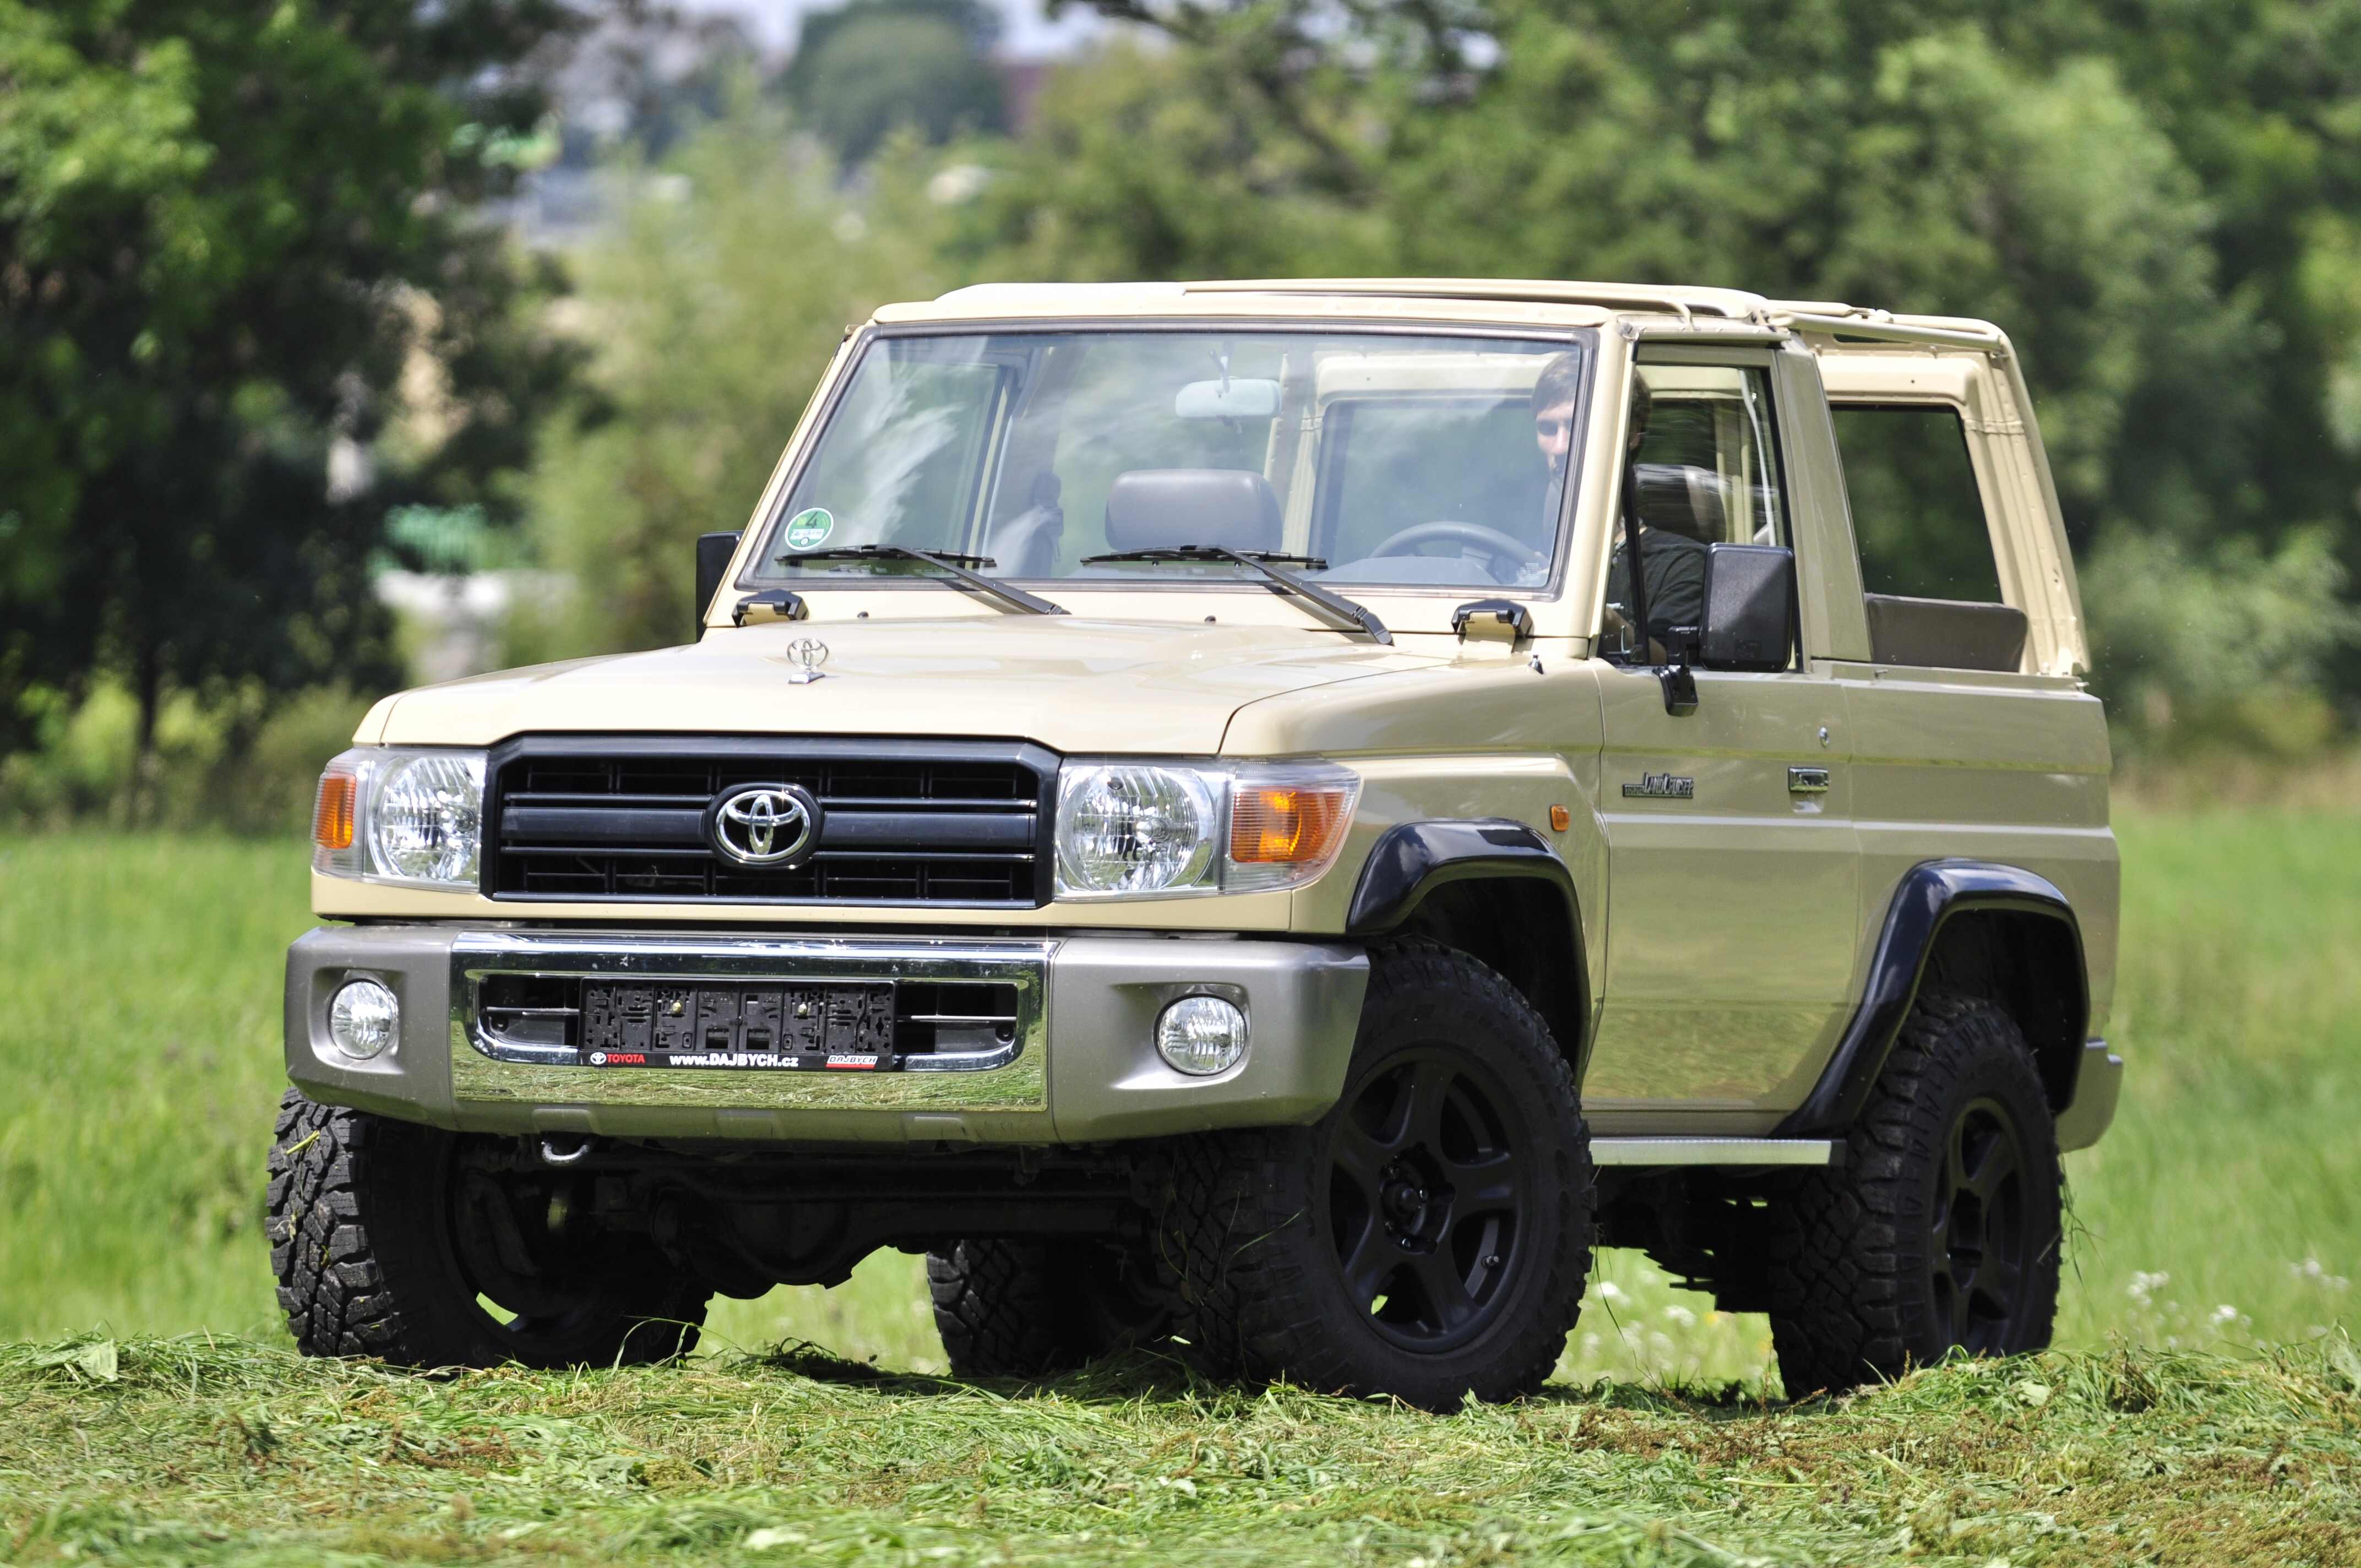 Toyota Land Cruiser GRJ71 - Formule off-road